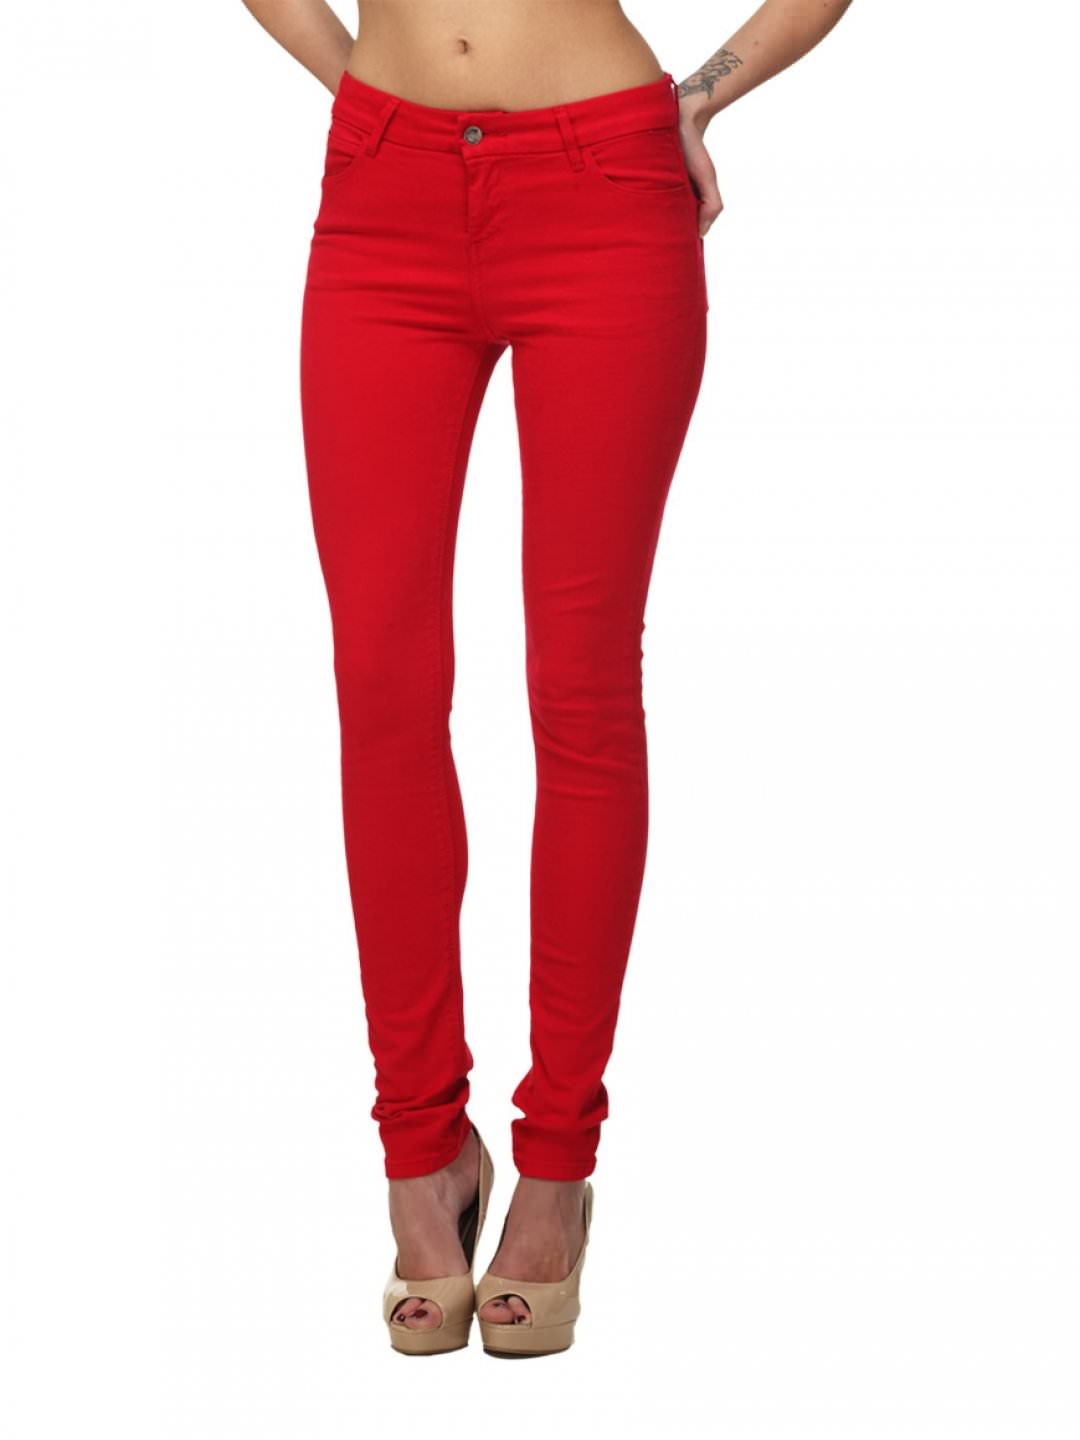 red jeans for women women red jeans hmcjoxt